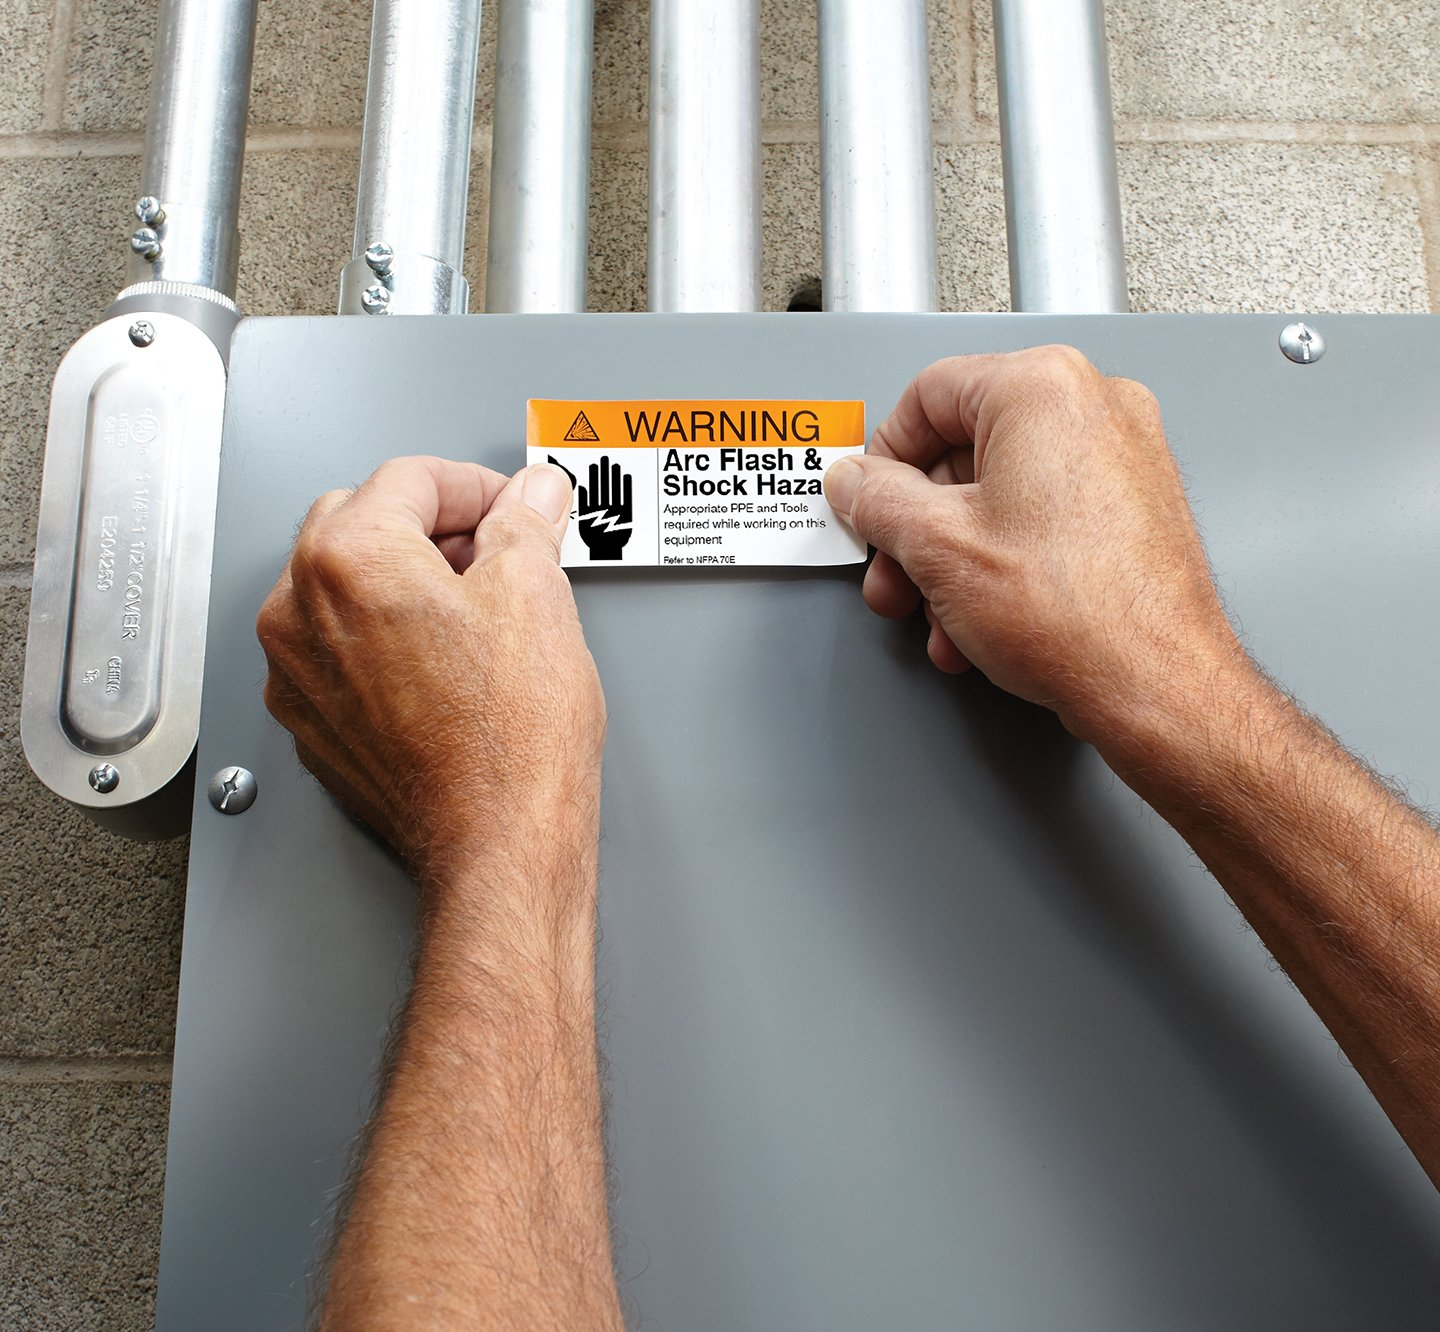 Hands placing a warning label on an electrical box.